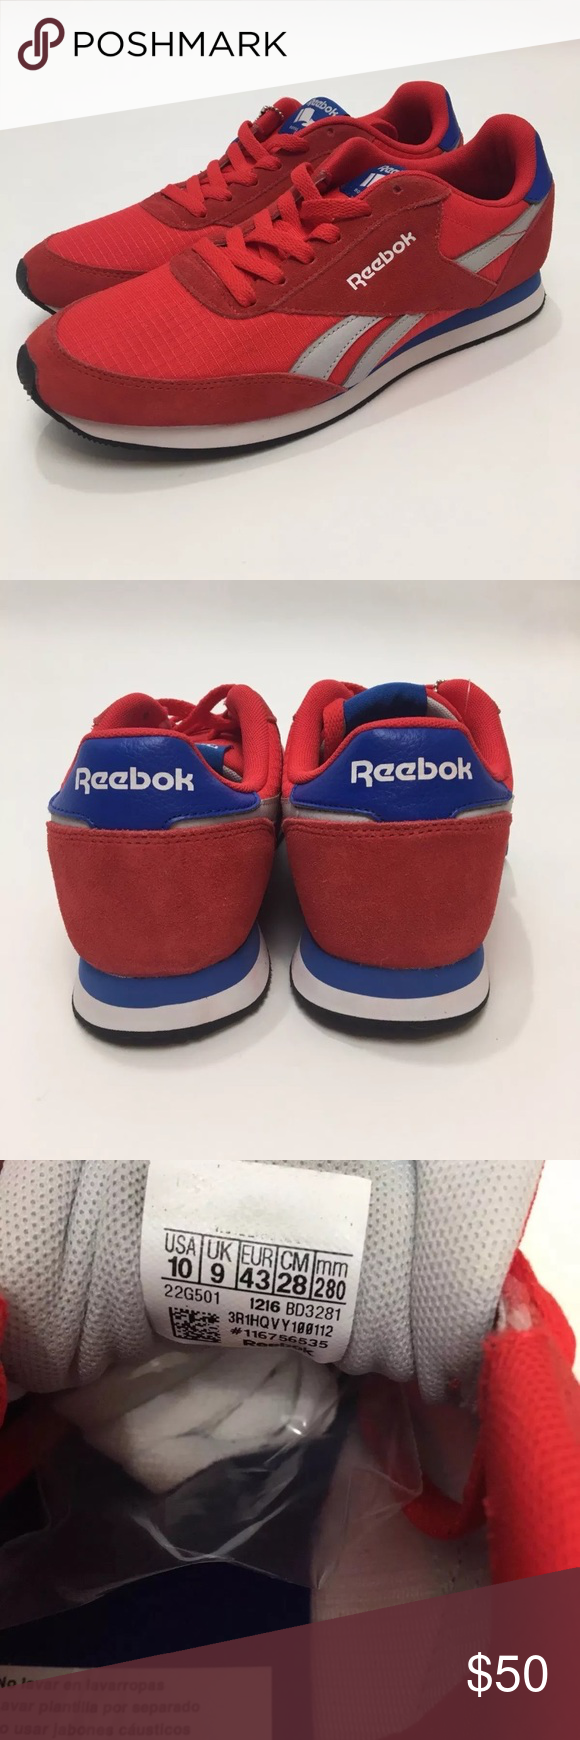 2af02584fb7 Reebok Classic Men s Retro Jogger Royal CL Red white and blue retro Reebok  jogger. Changeable to white laces included. Men s Size 10.